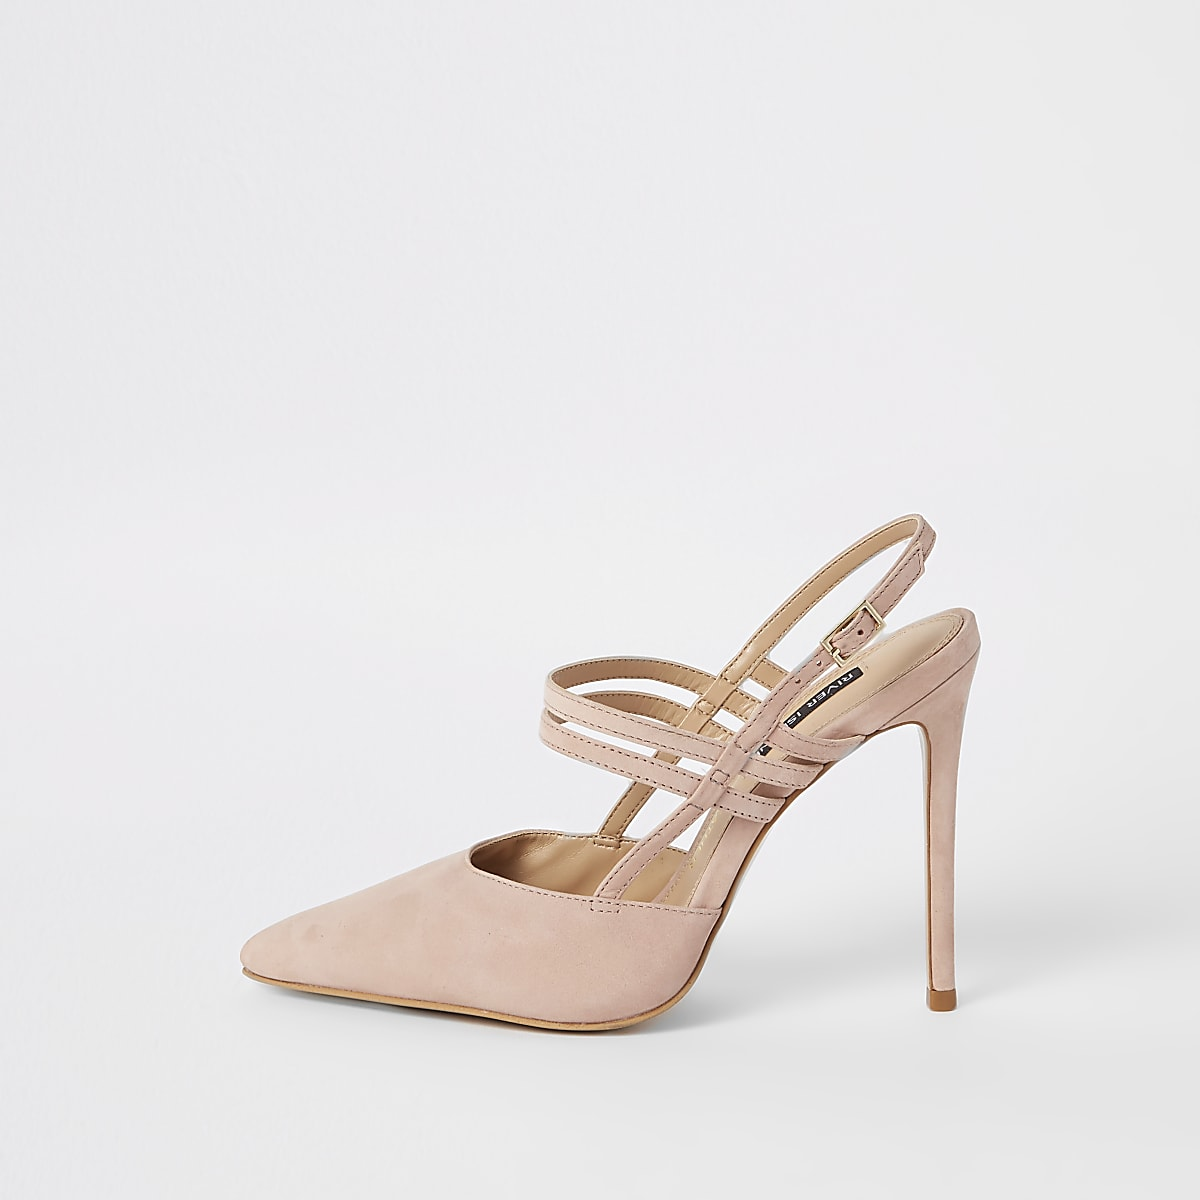 Light pink leather strappy pumps